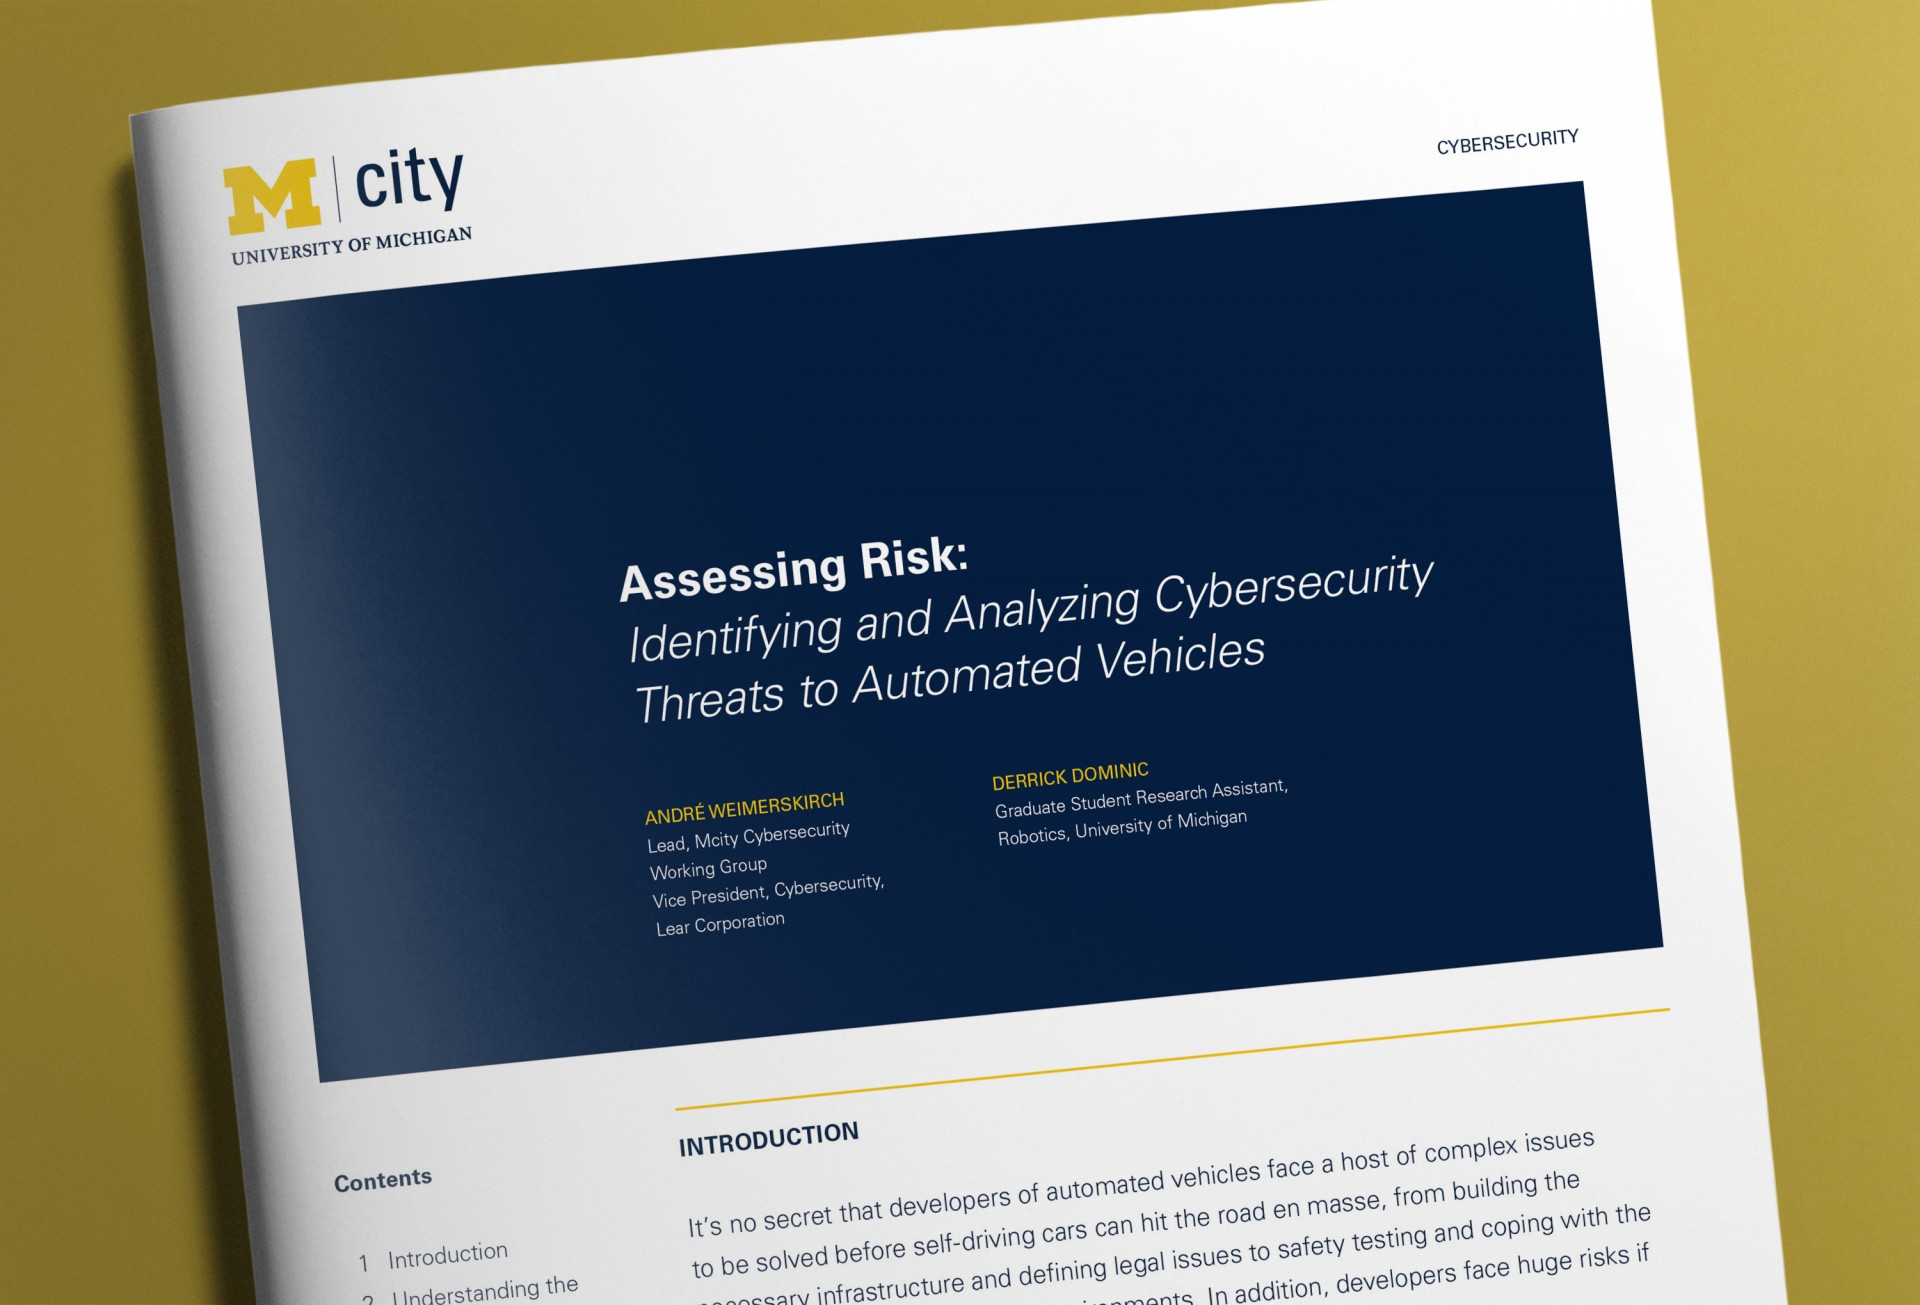 006 Whitepaper Cybersecurity Research Paper Cyber Security Papers Wondrous 2018 Pdf 1920